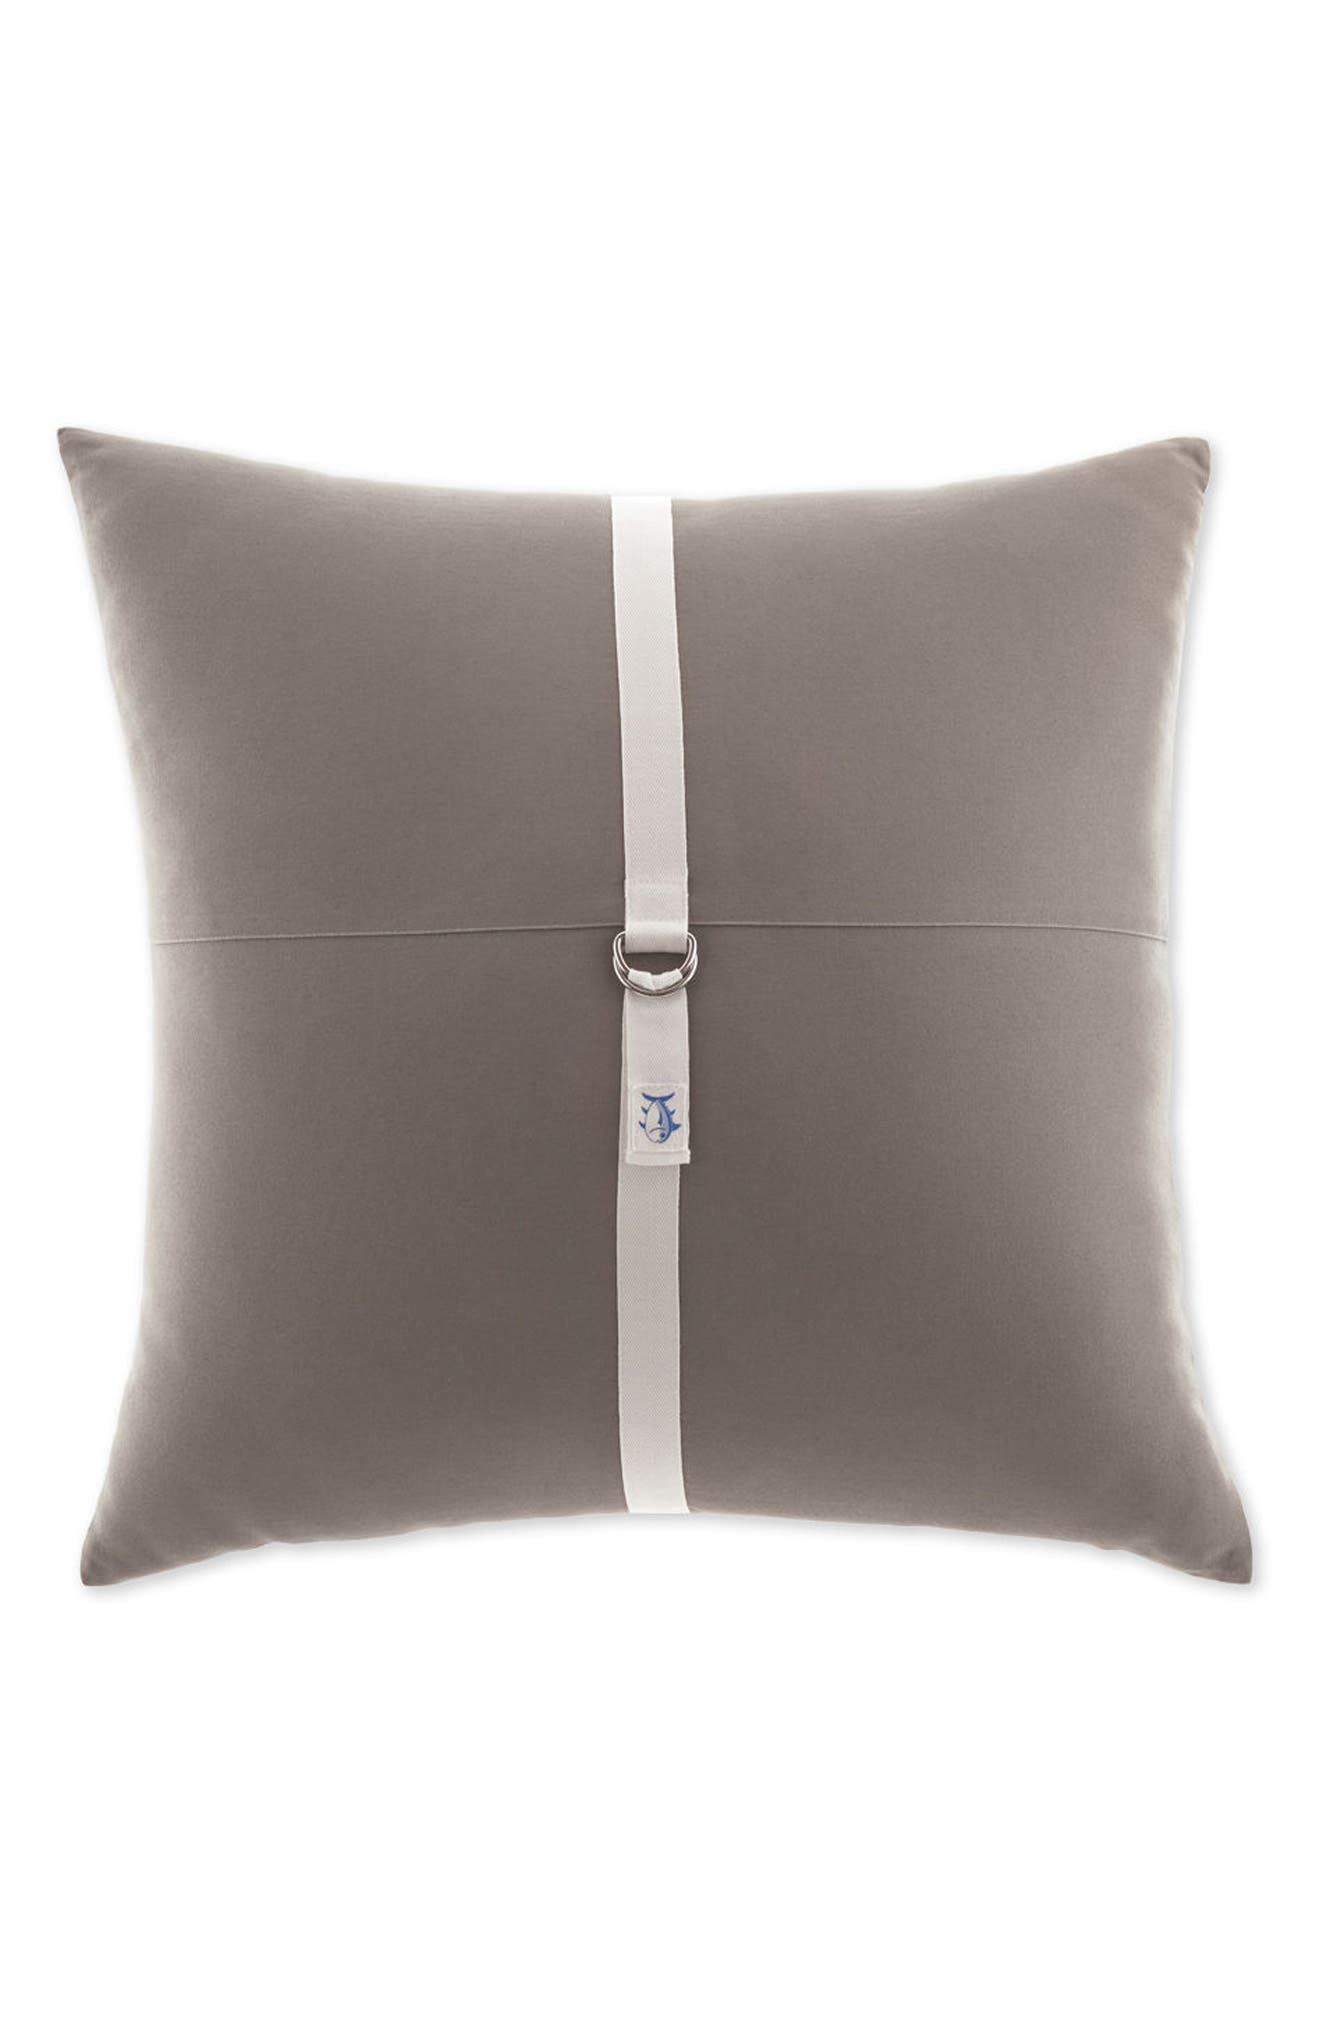 Starboard Nautical Accent Pillow,                         Main,                         color, 020